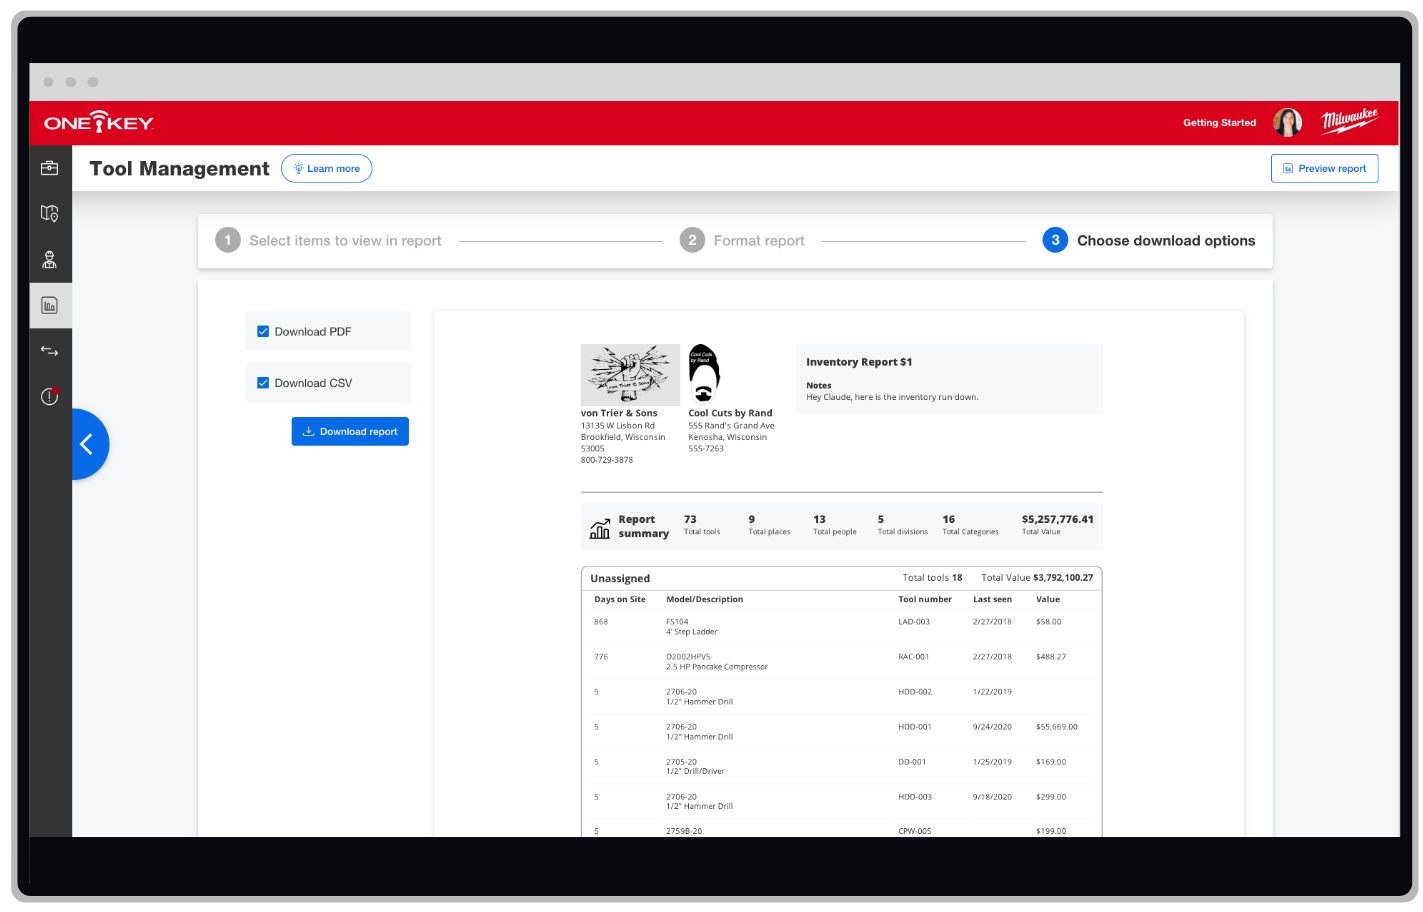 One-Key web app displays tool management report download options